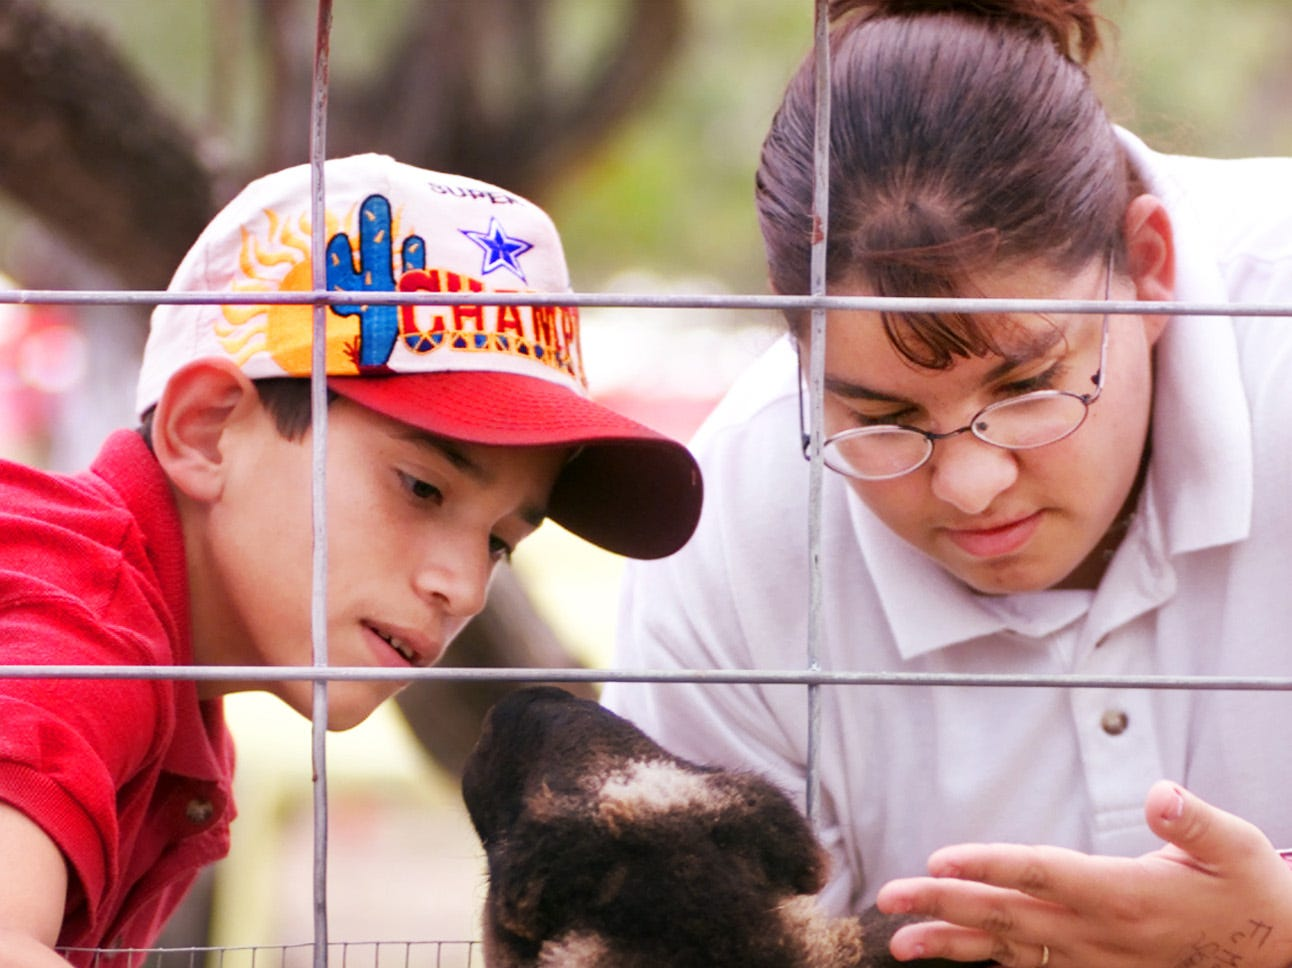 14-yr-old Chris Garcia (left), and his sister 15-yr-old Frances Garcia (right), with a sheep in the petting zoo inside Texas Sky Festival Park in October 2000.Both are students at West Oso High School.